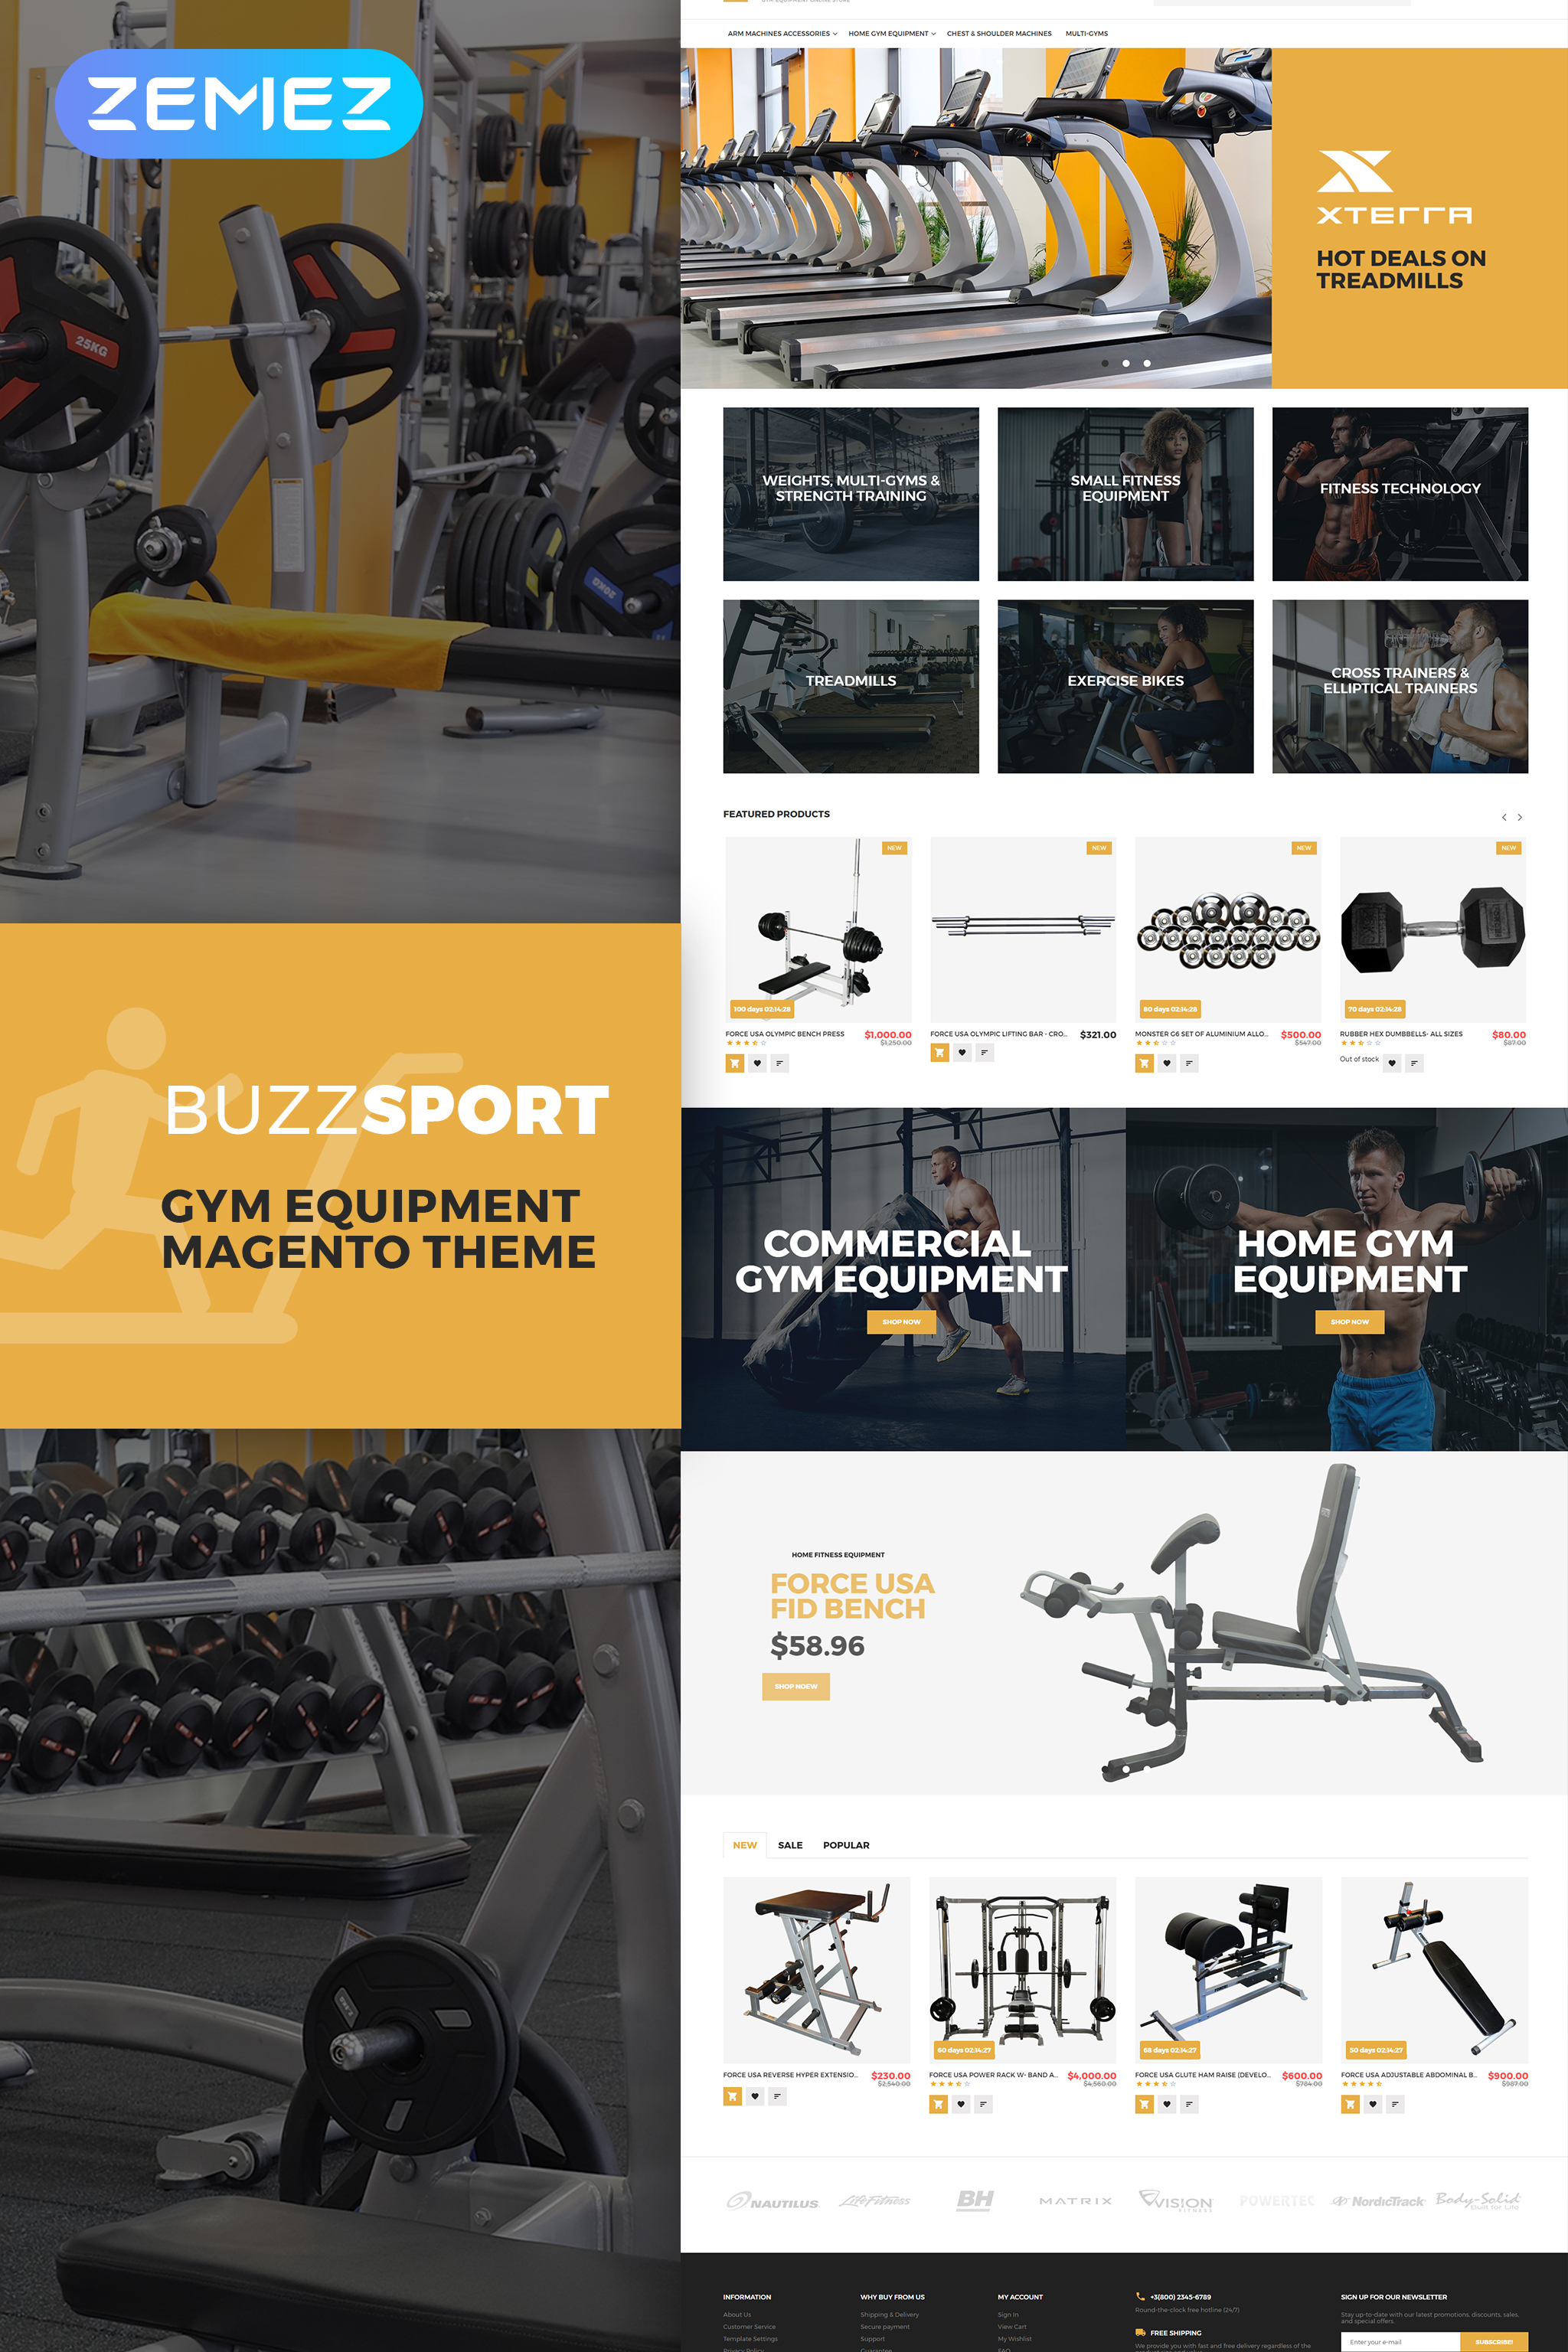 BuzzSport - Gym Equipment Magento Theme